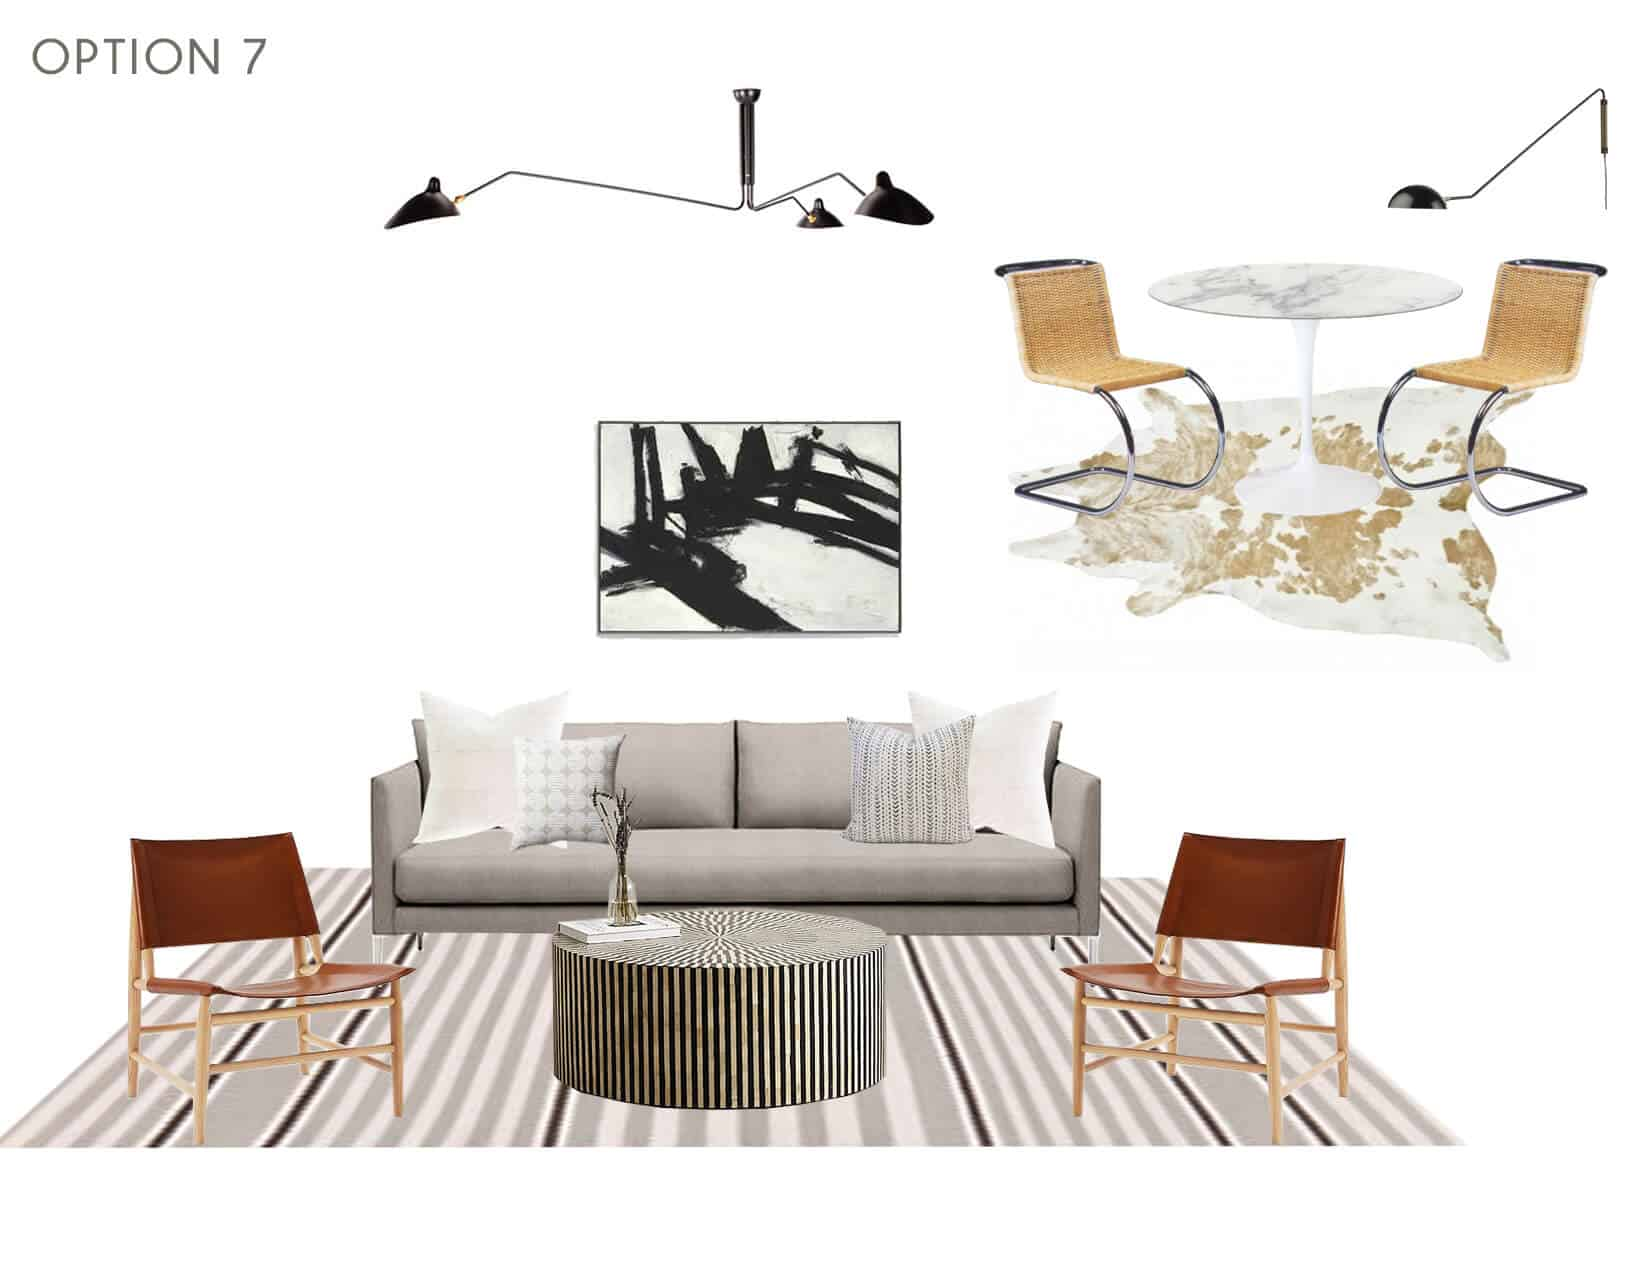 Emily Henderson_Full Design_Sunroom_Introduction_Moodboard_Option 7